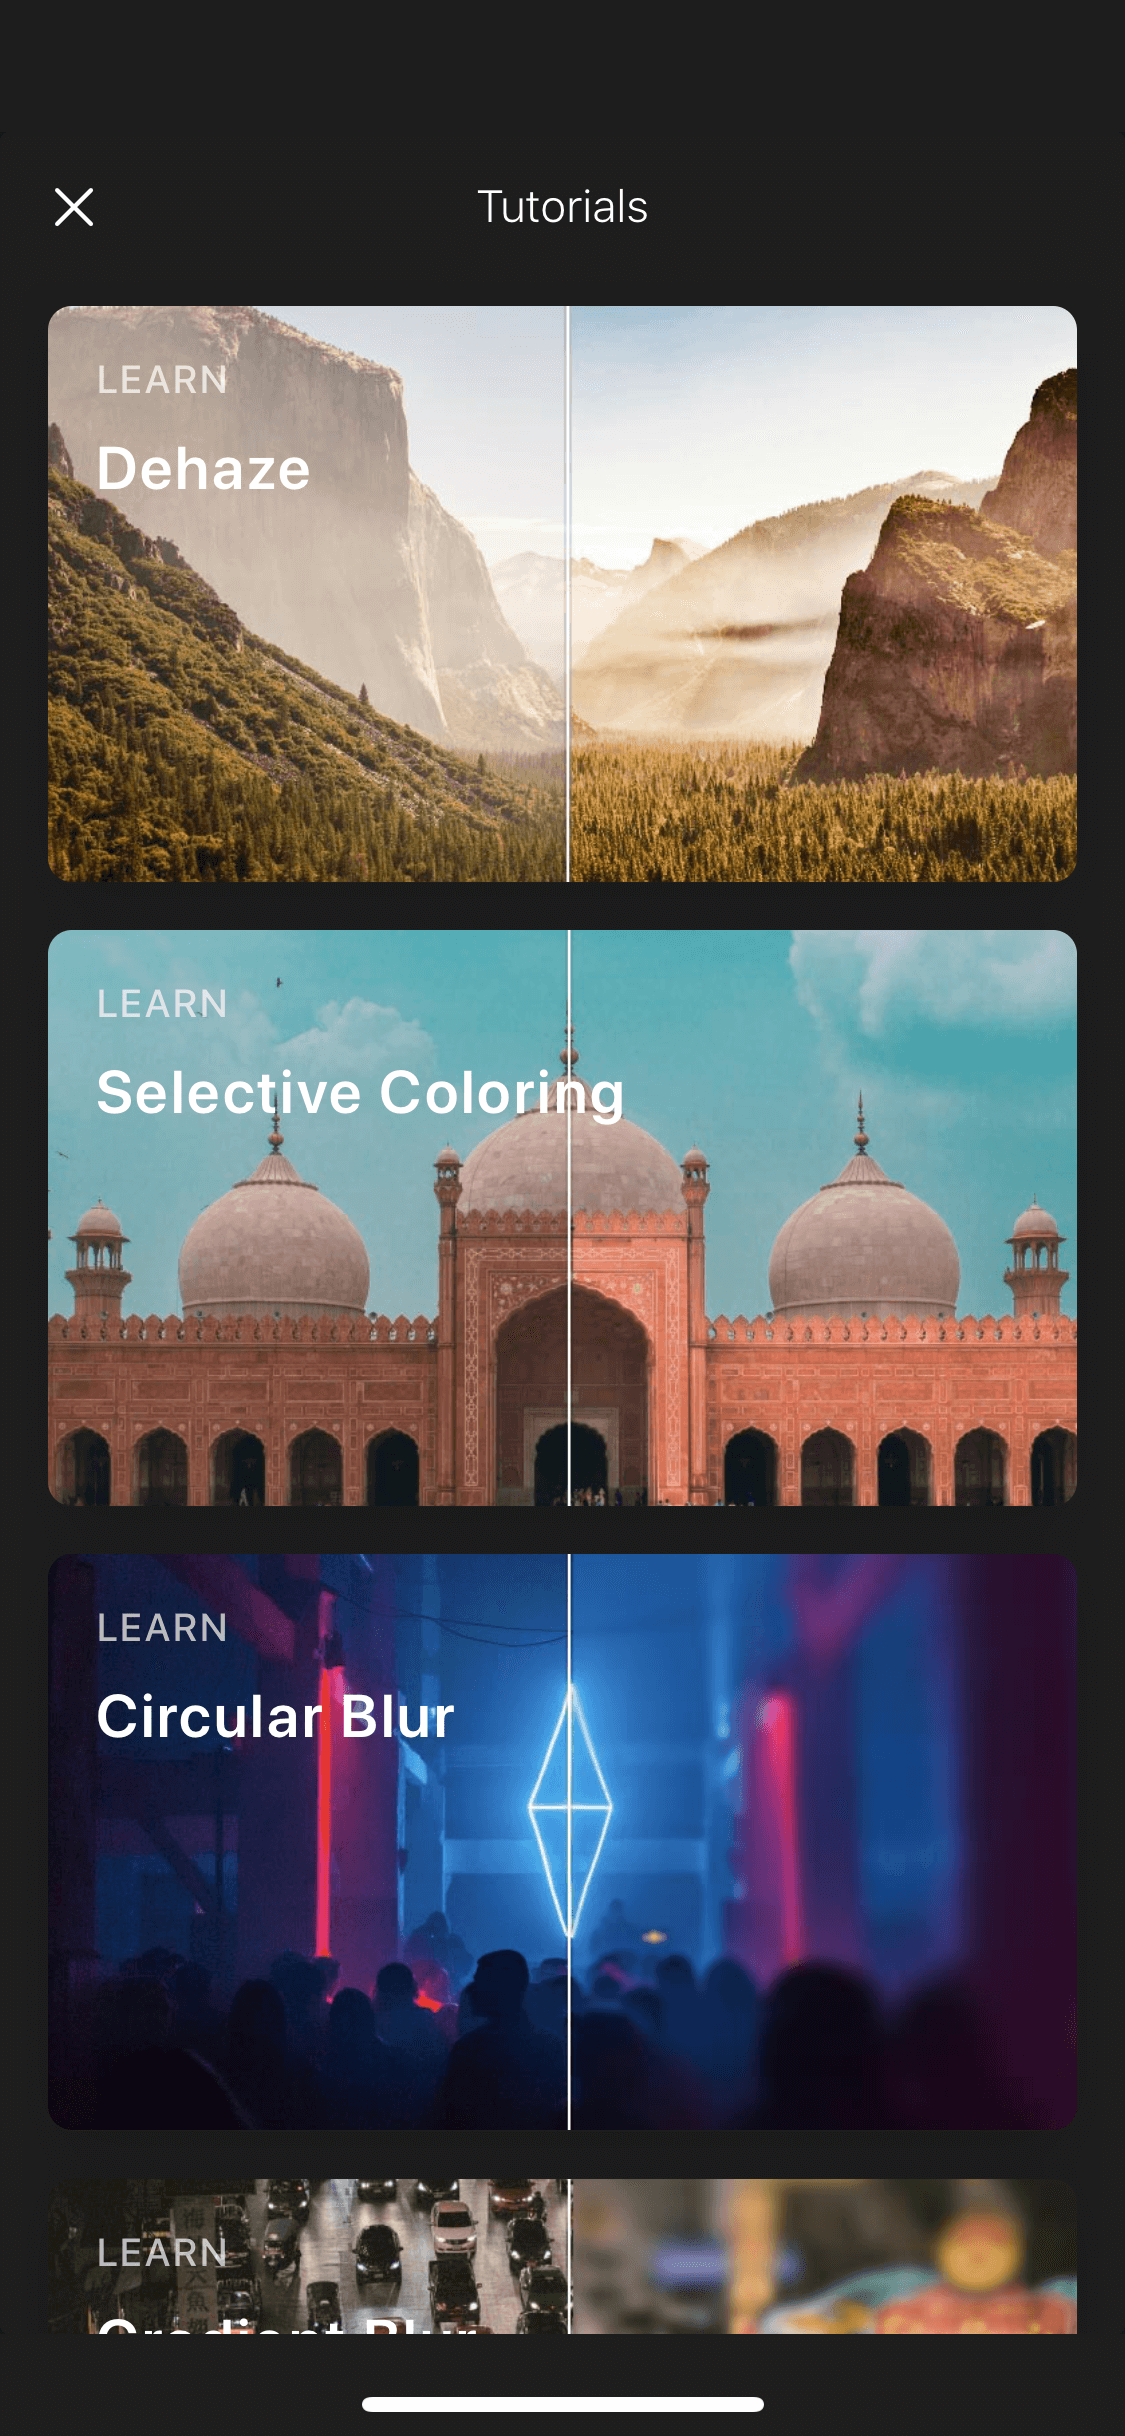 Store on iOS by Polarr